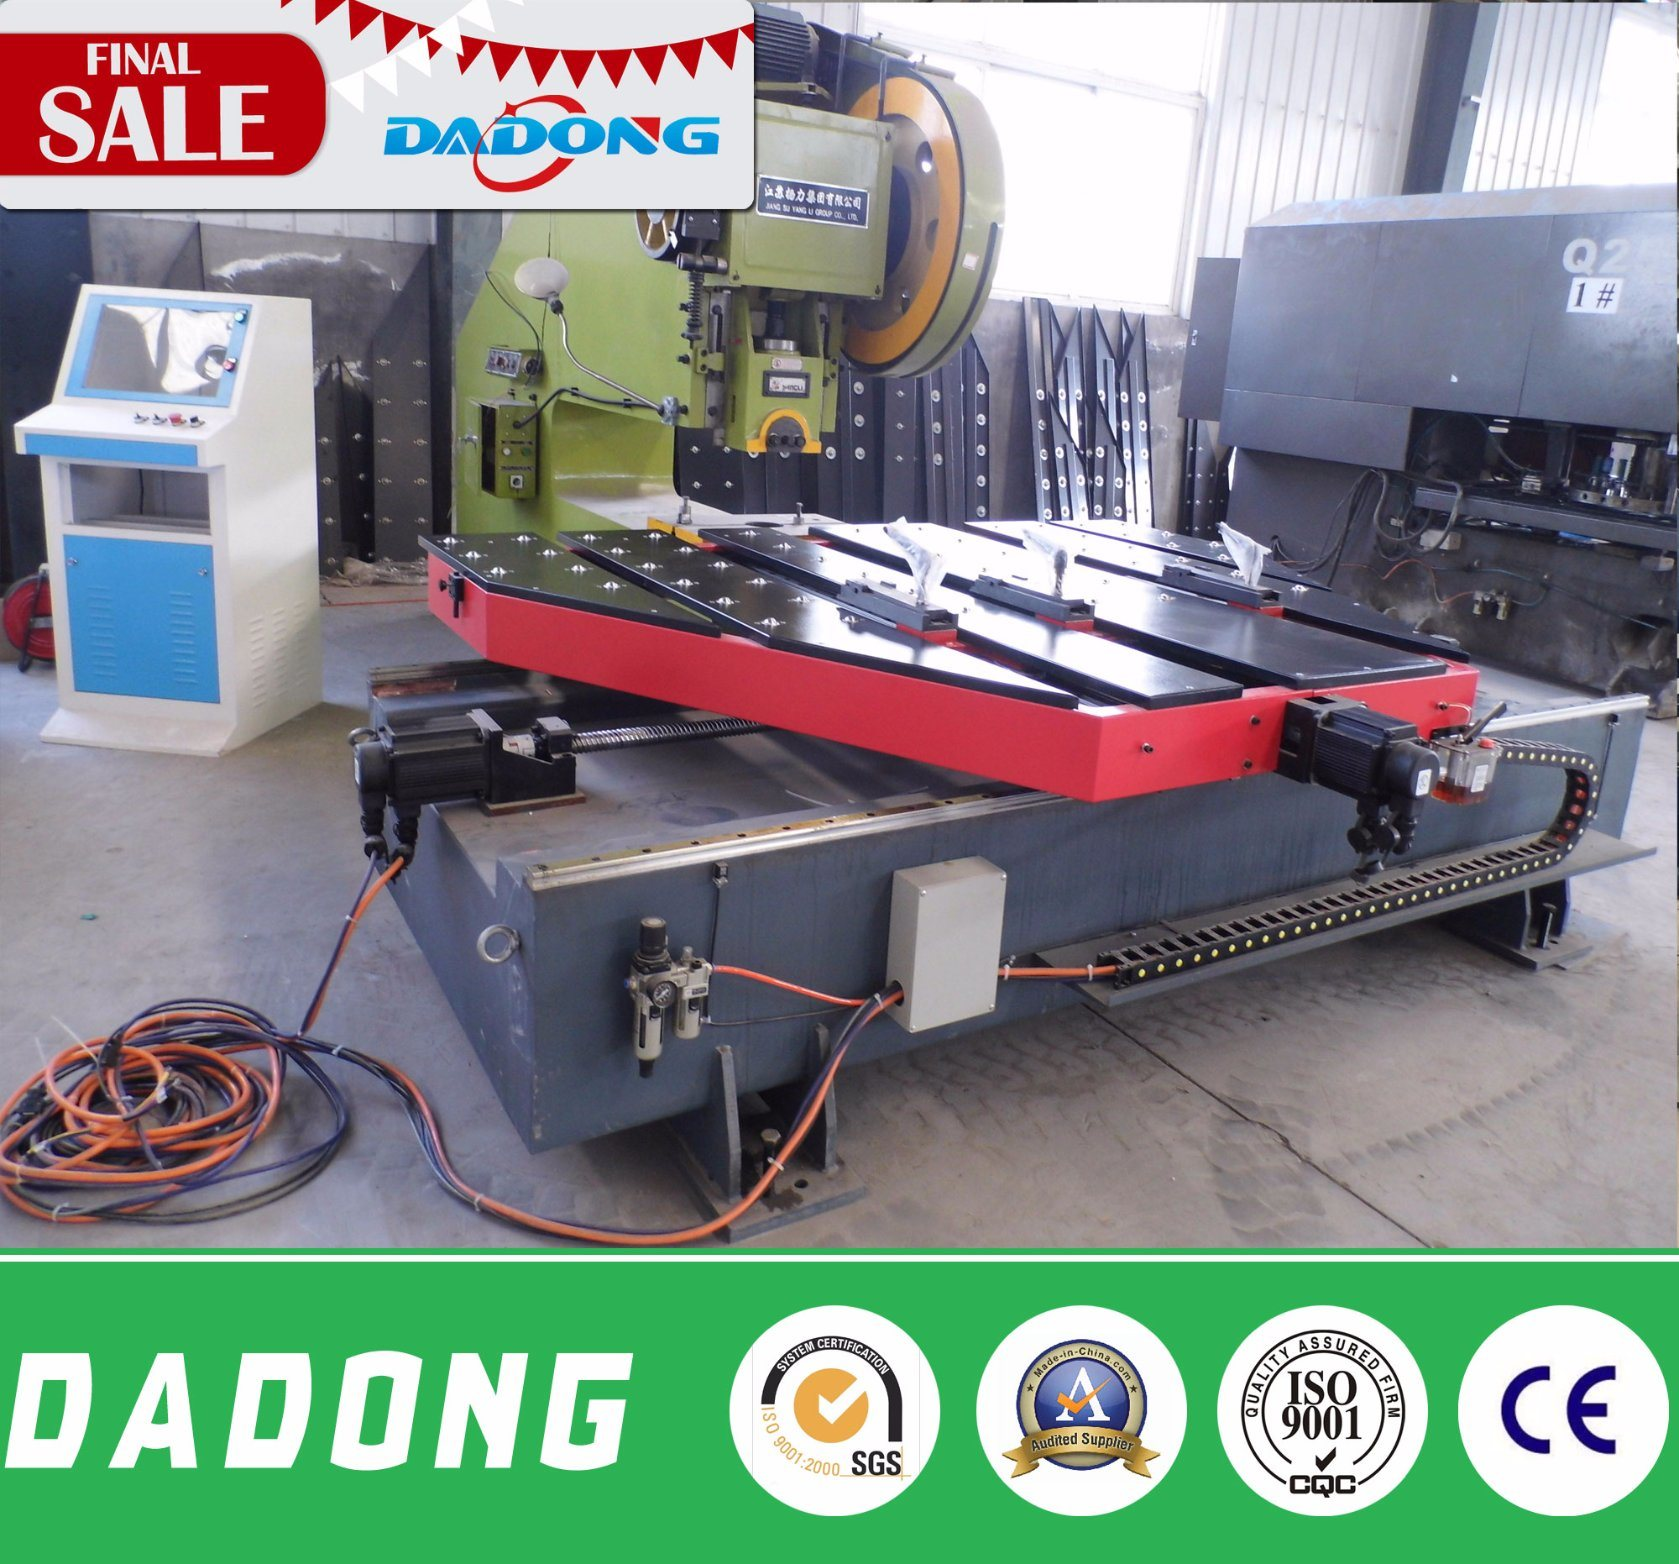 P25 CNC Auto Feeder Machine Twin Screw Feeder Machine